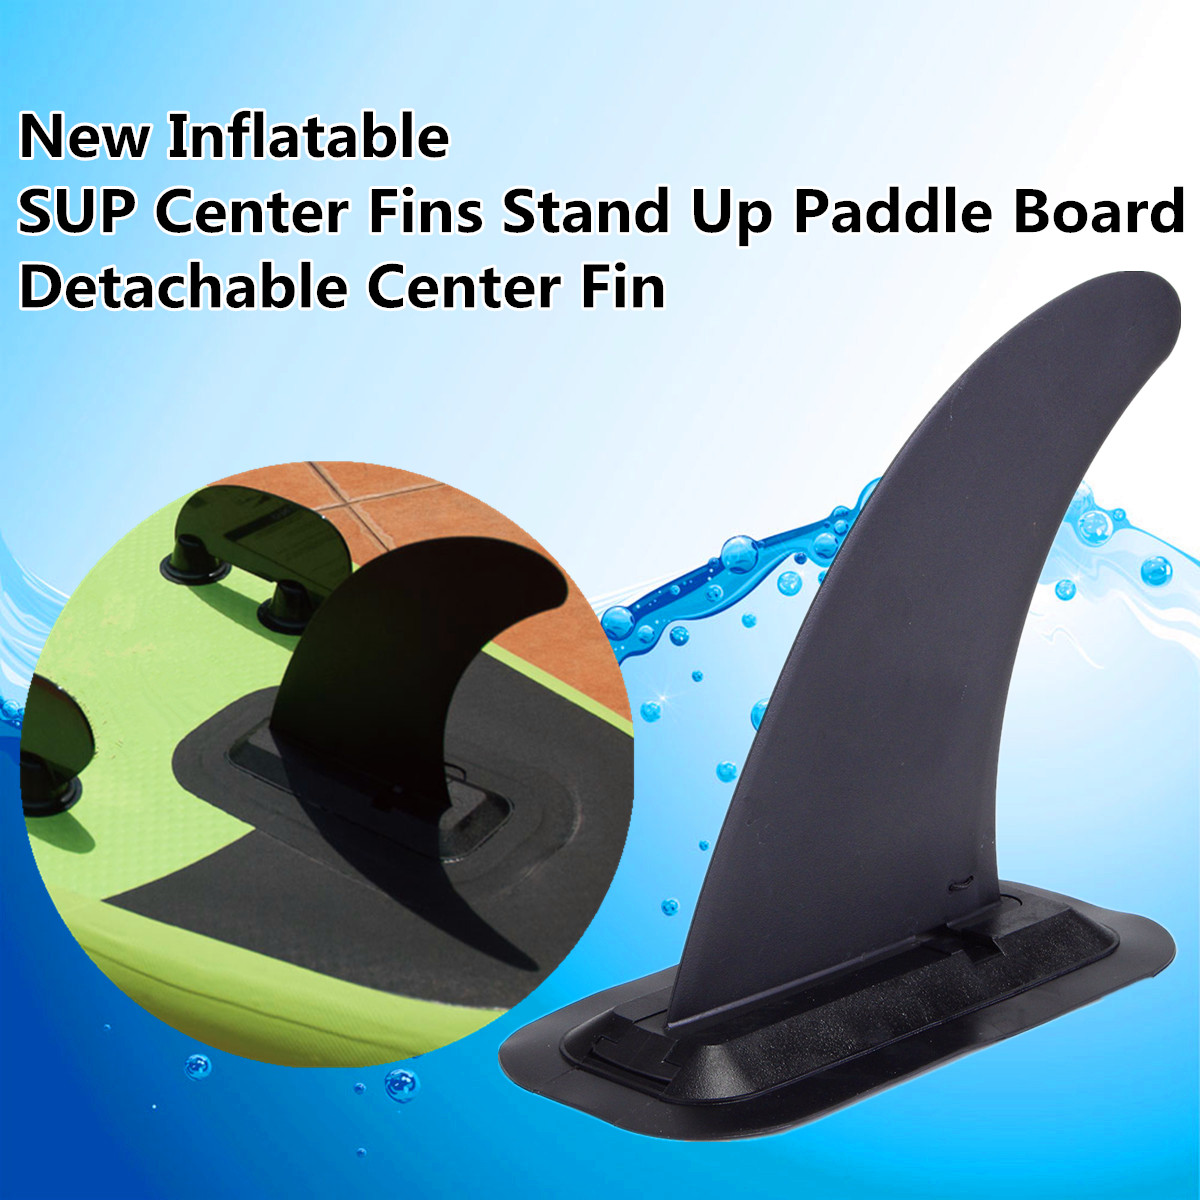 2018 New 1pcs Detachable Inflatable SUP Center Fins Stand Up Paddle Board Detachable Center Fin Center Surf Fin 8'' Sup Fin